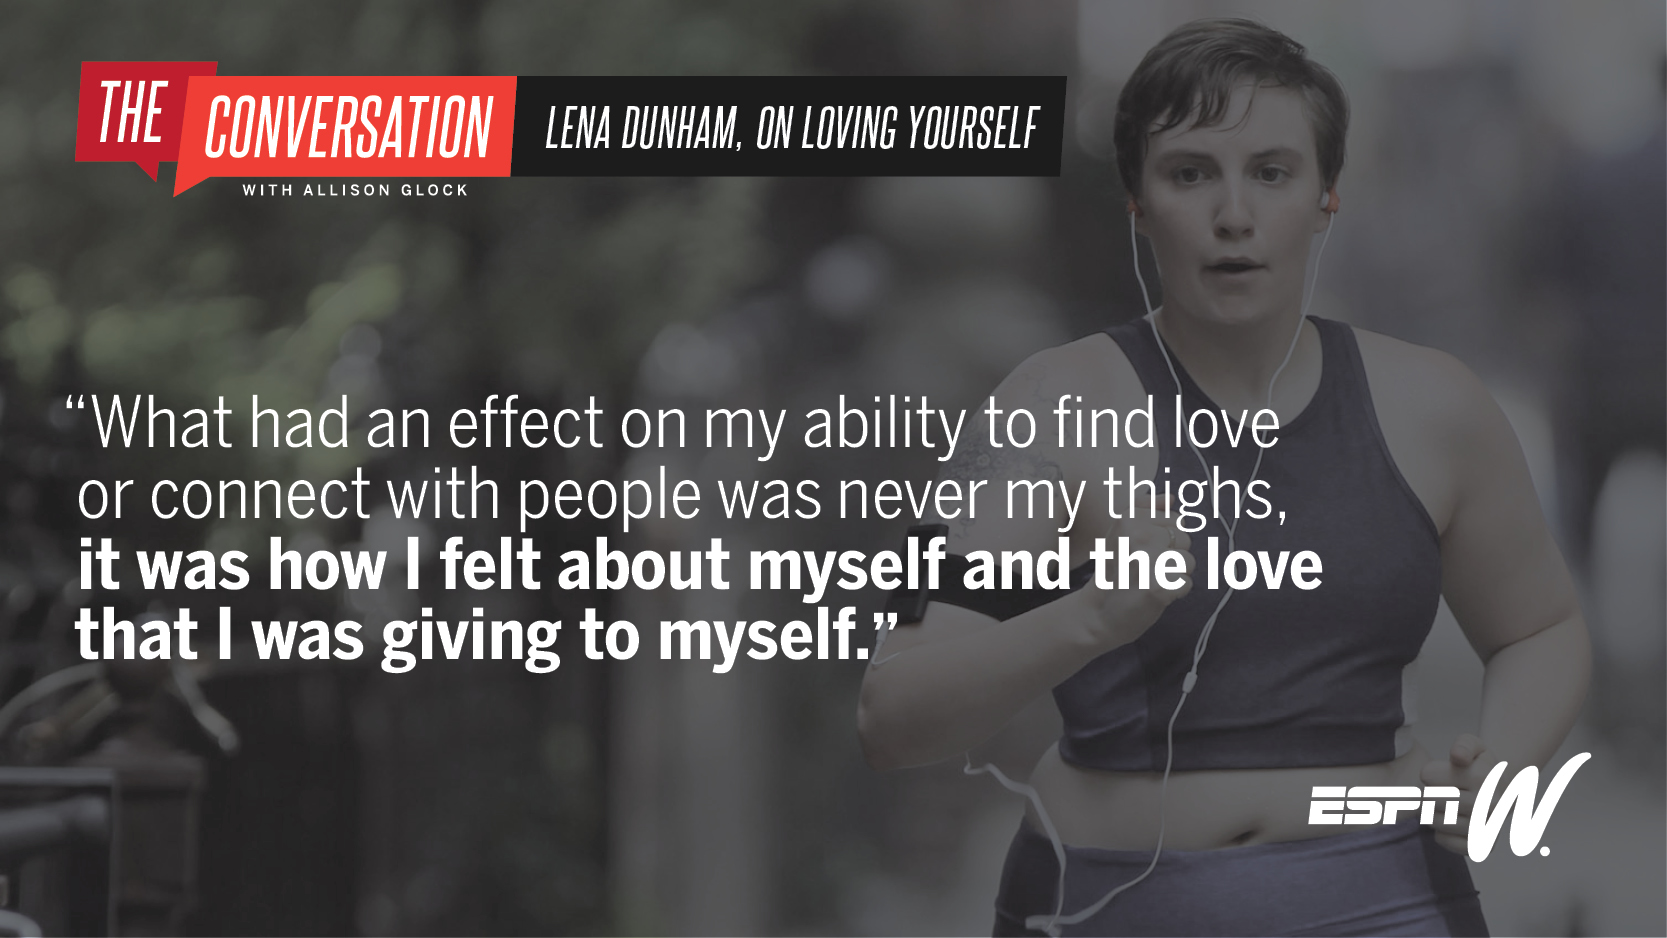 Alison Glock's The Conversation with Lena Dunham